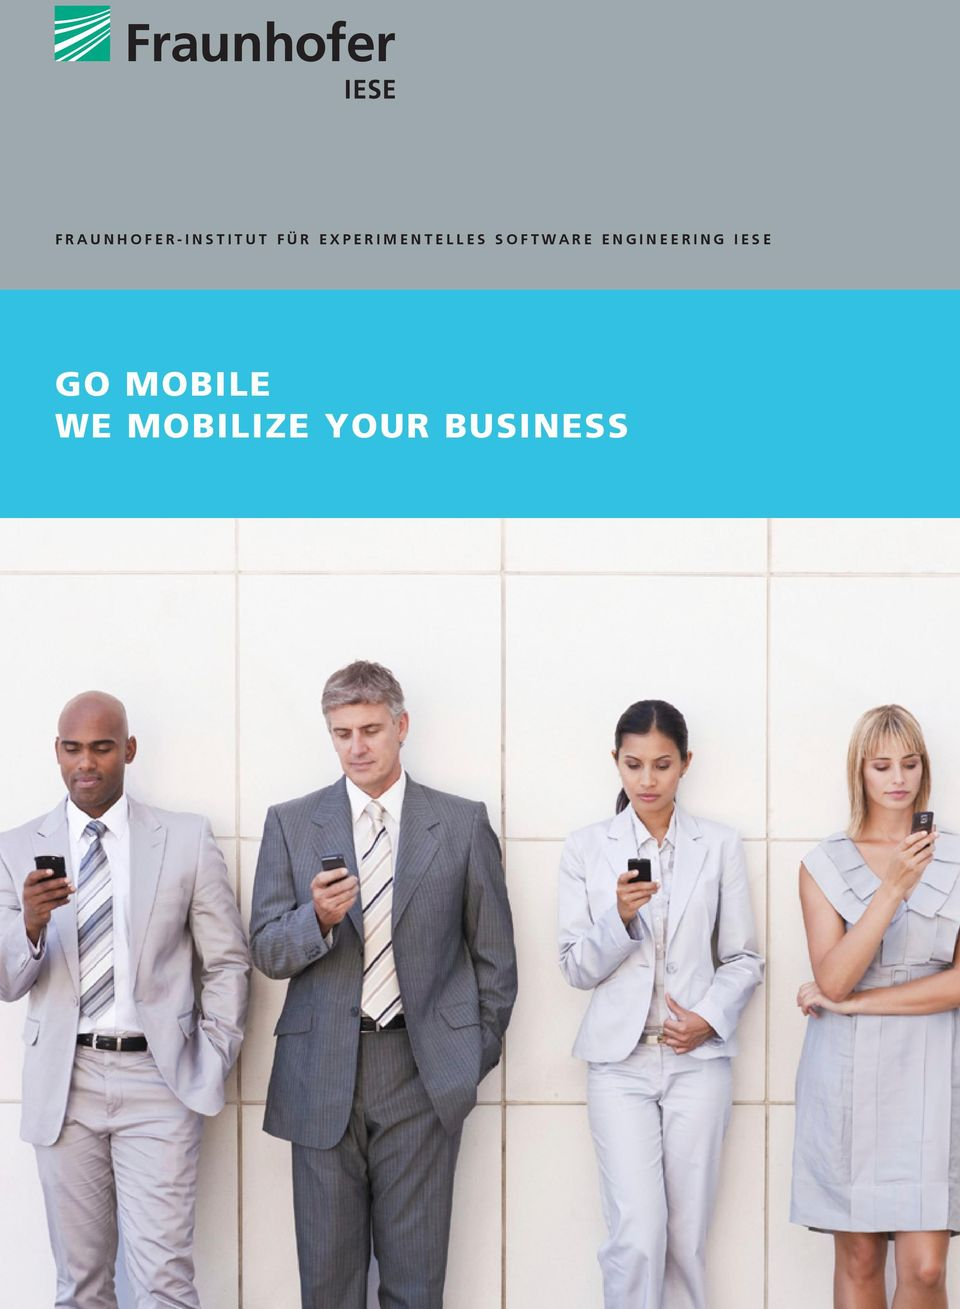 ENGINEERING IESE GO MOBILE USER